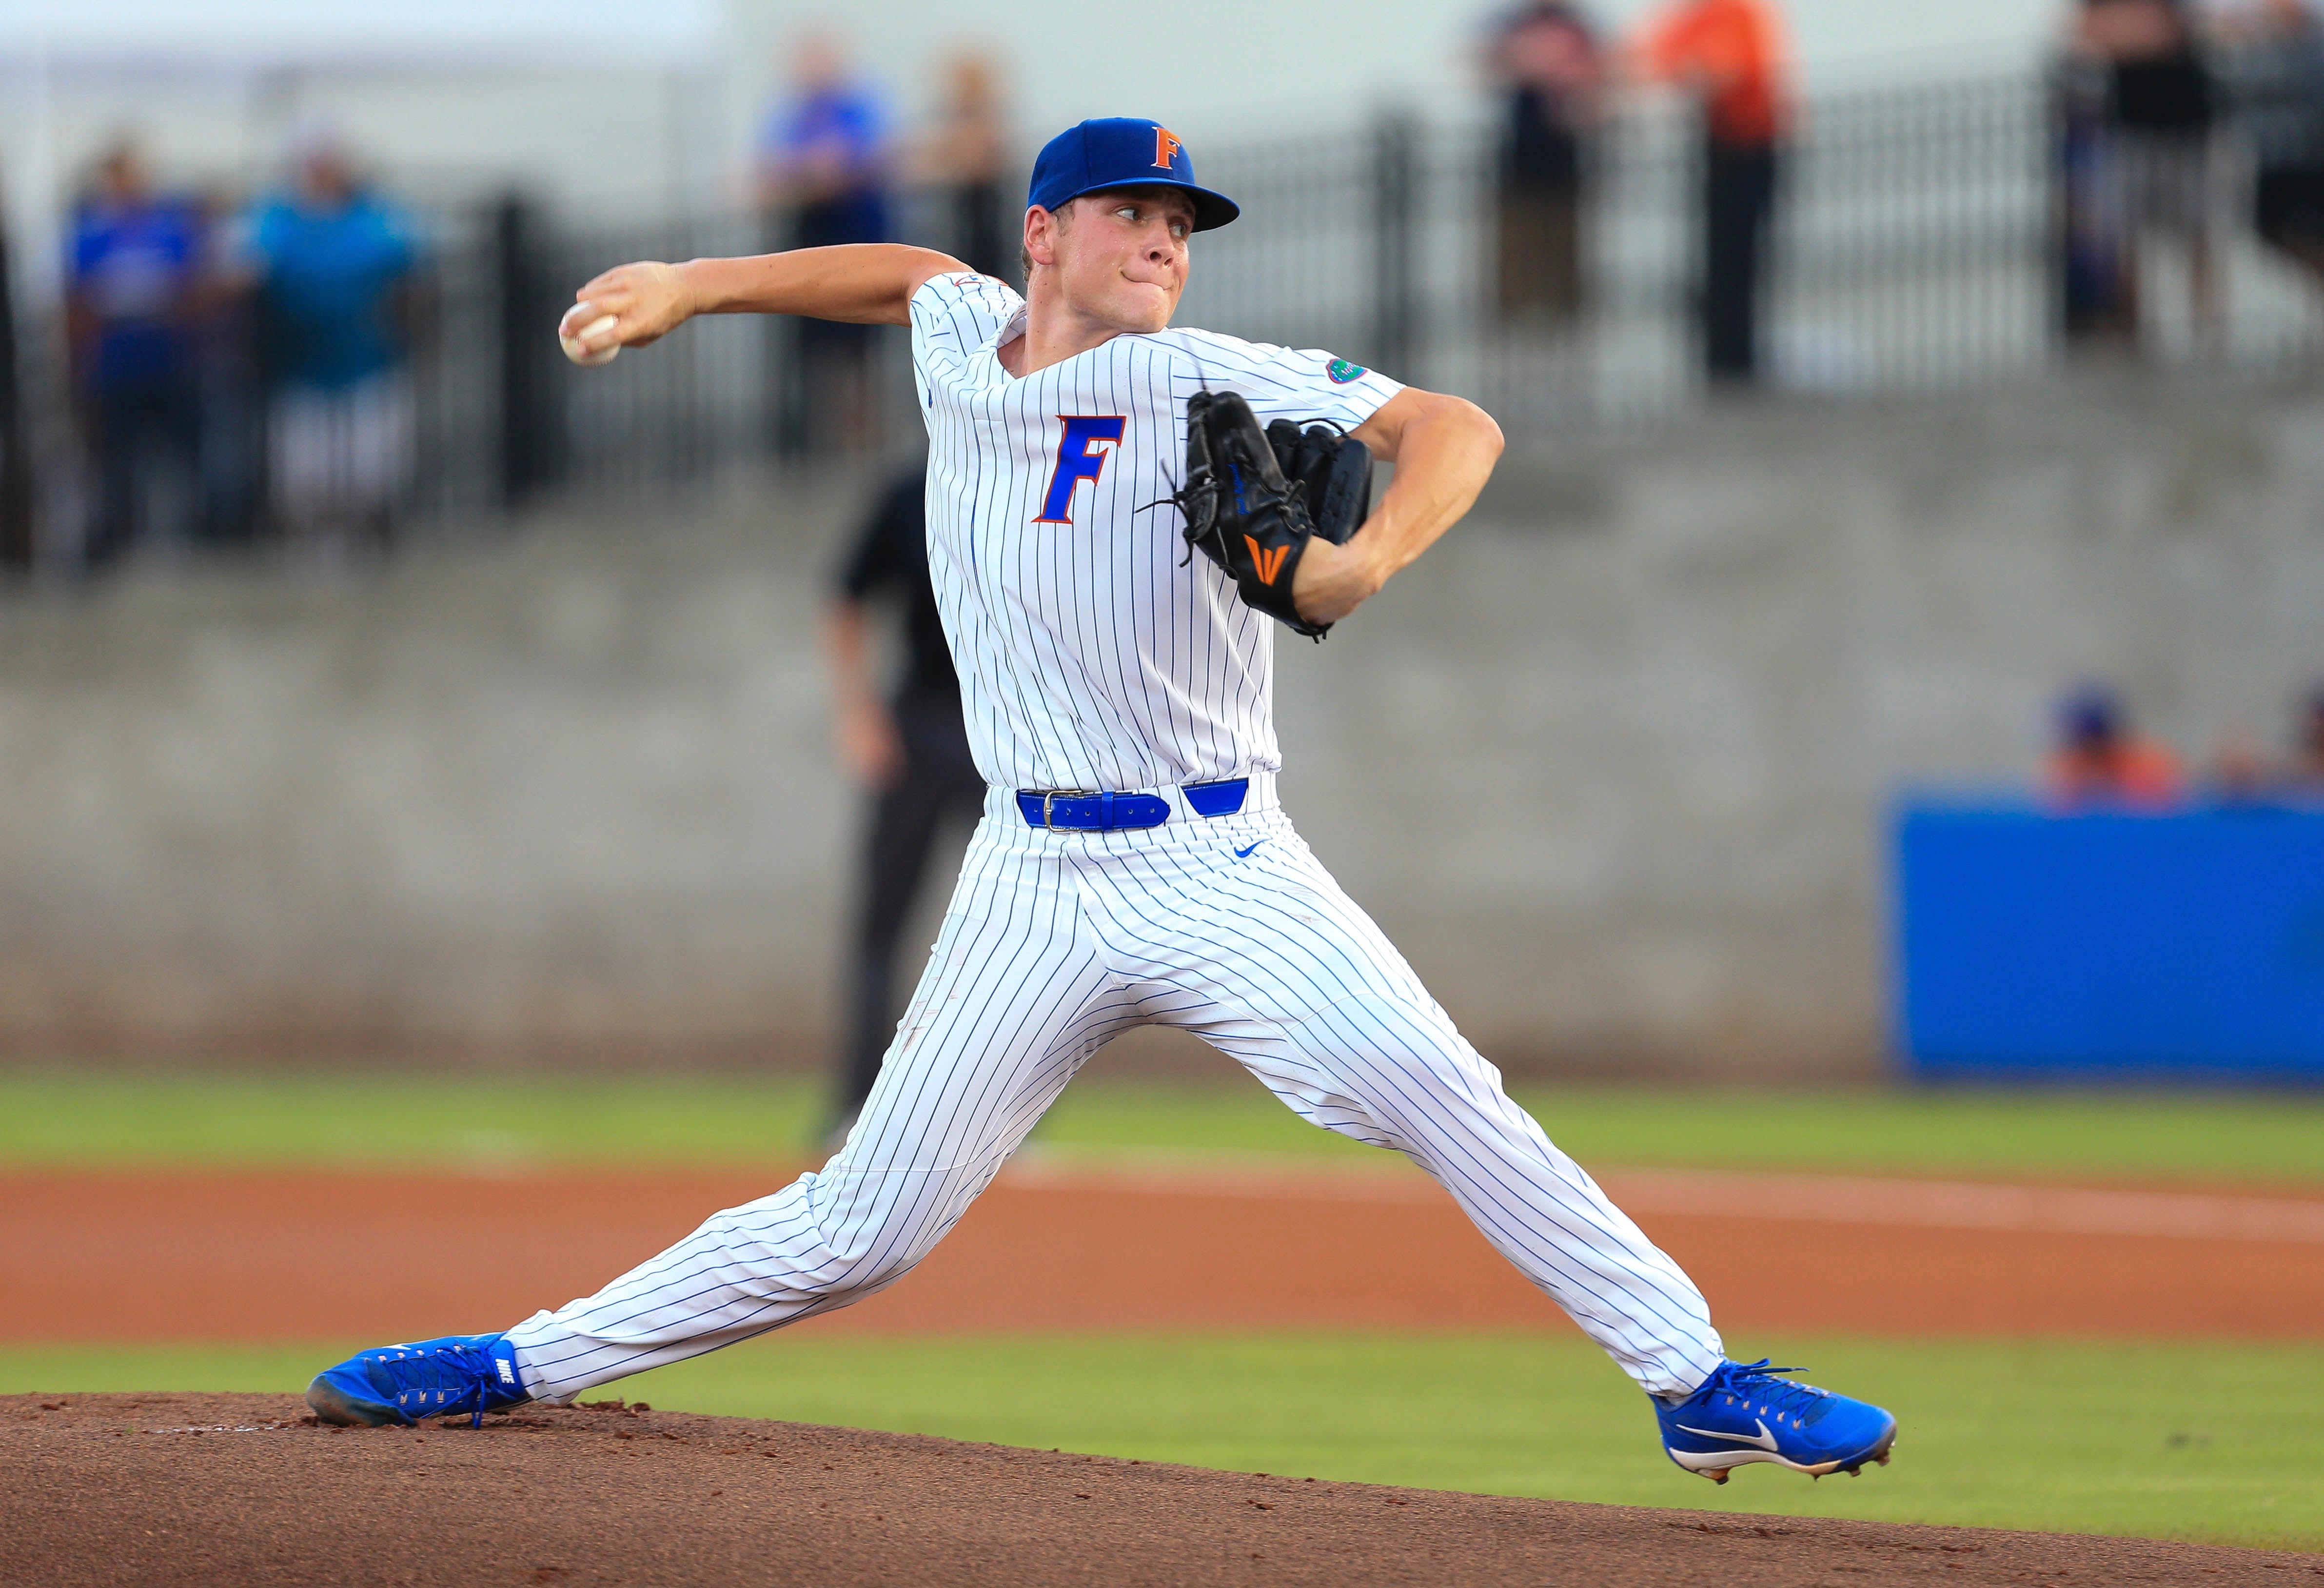 Langworthy's homer sends Florida to College World Series